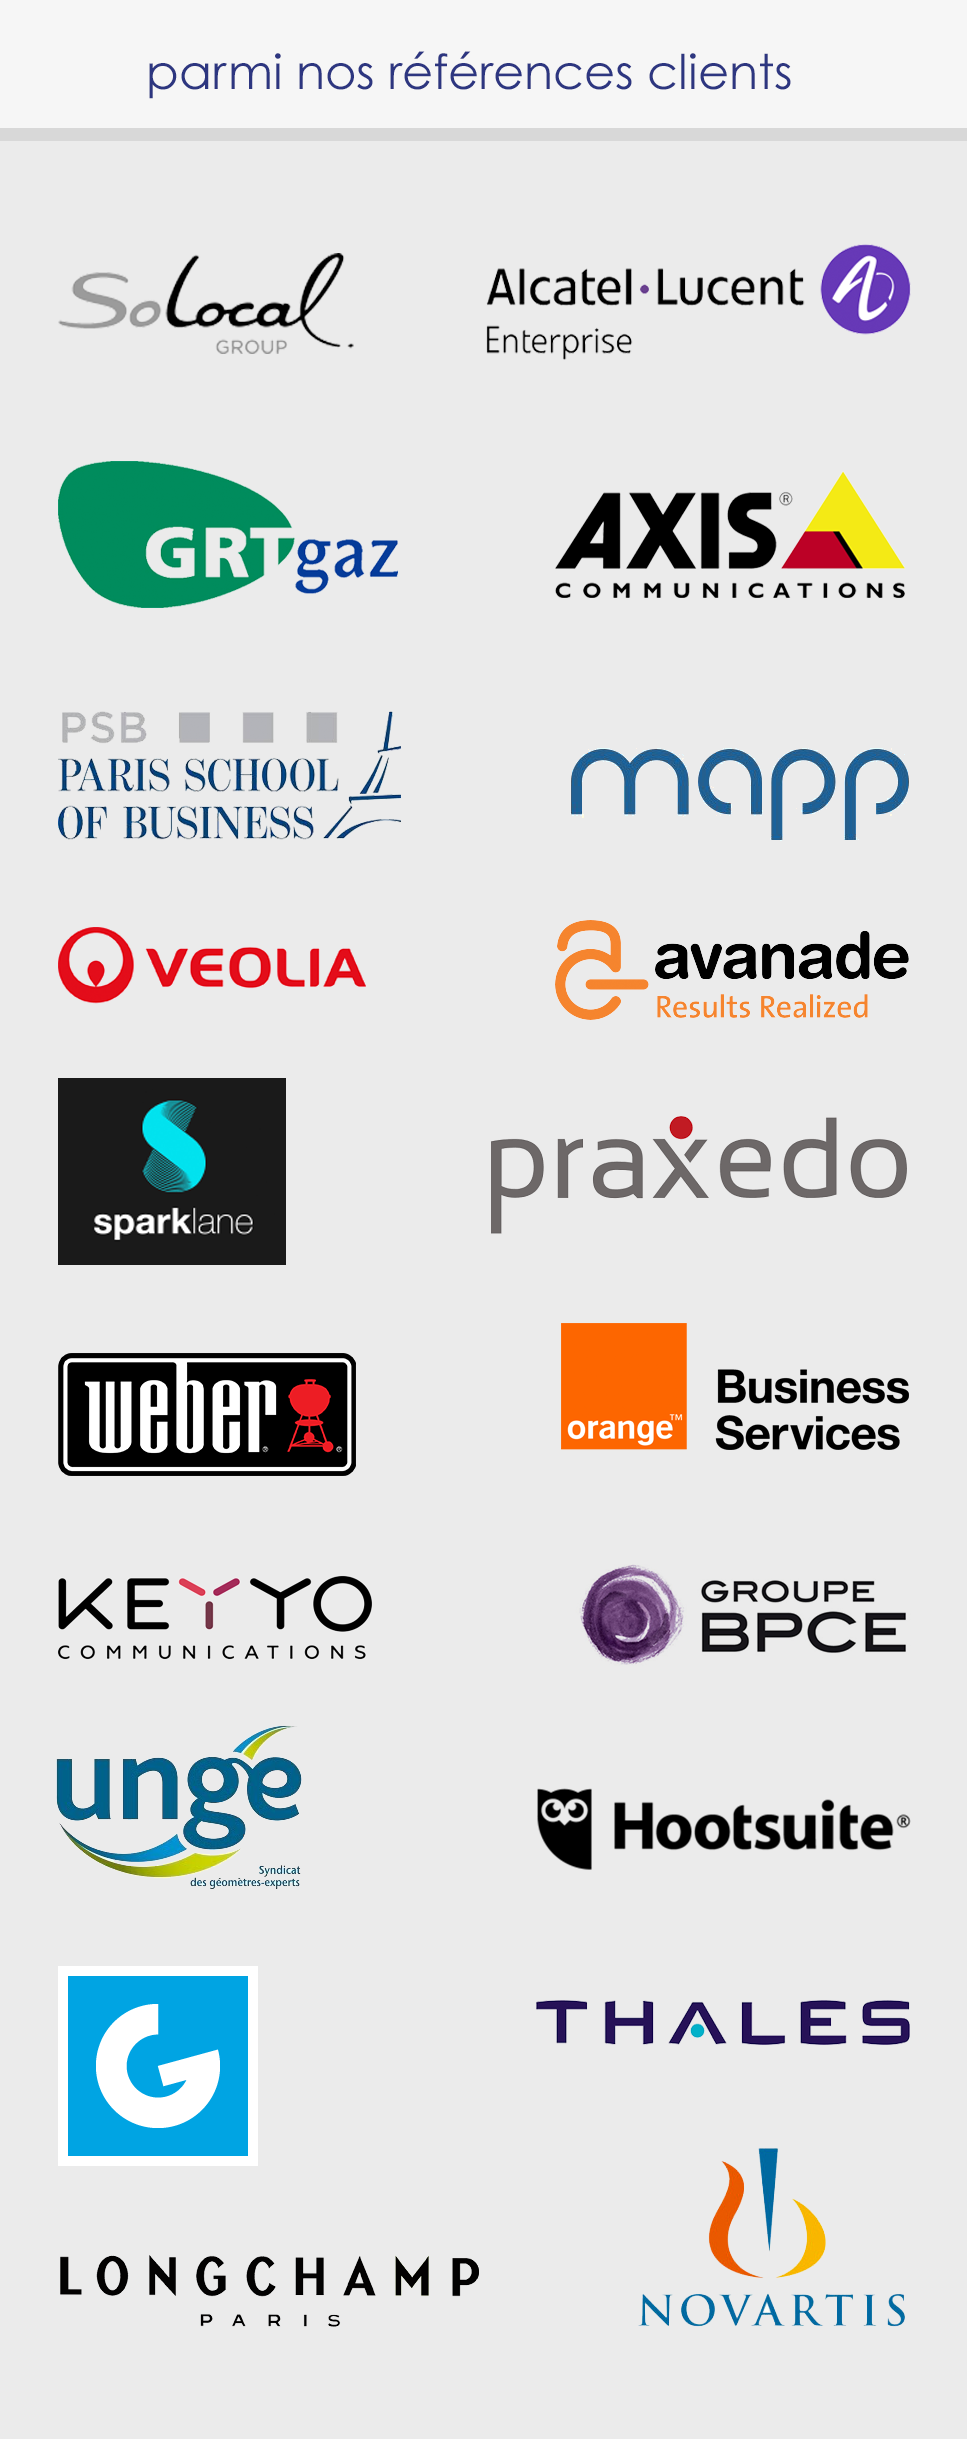 références clients de visionary marketing : schelcher prince, Orange, SFR, Business & Decision, Asterion, Axema, Nutrisaveurs, HEC, Celum